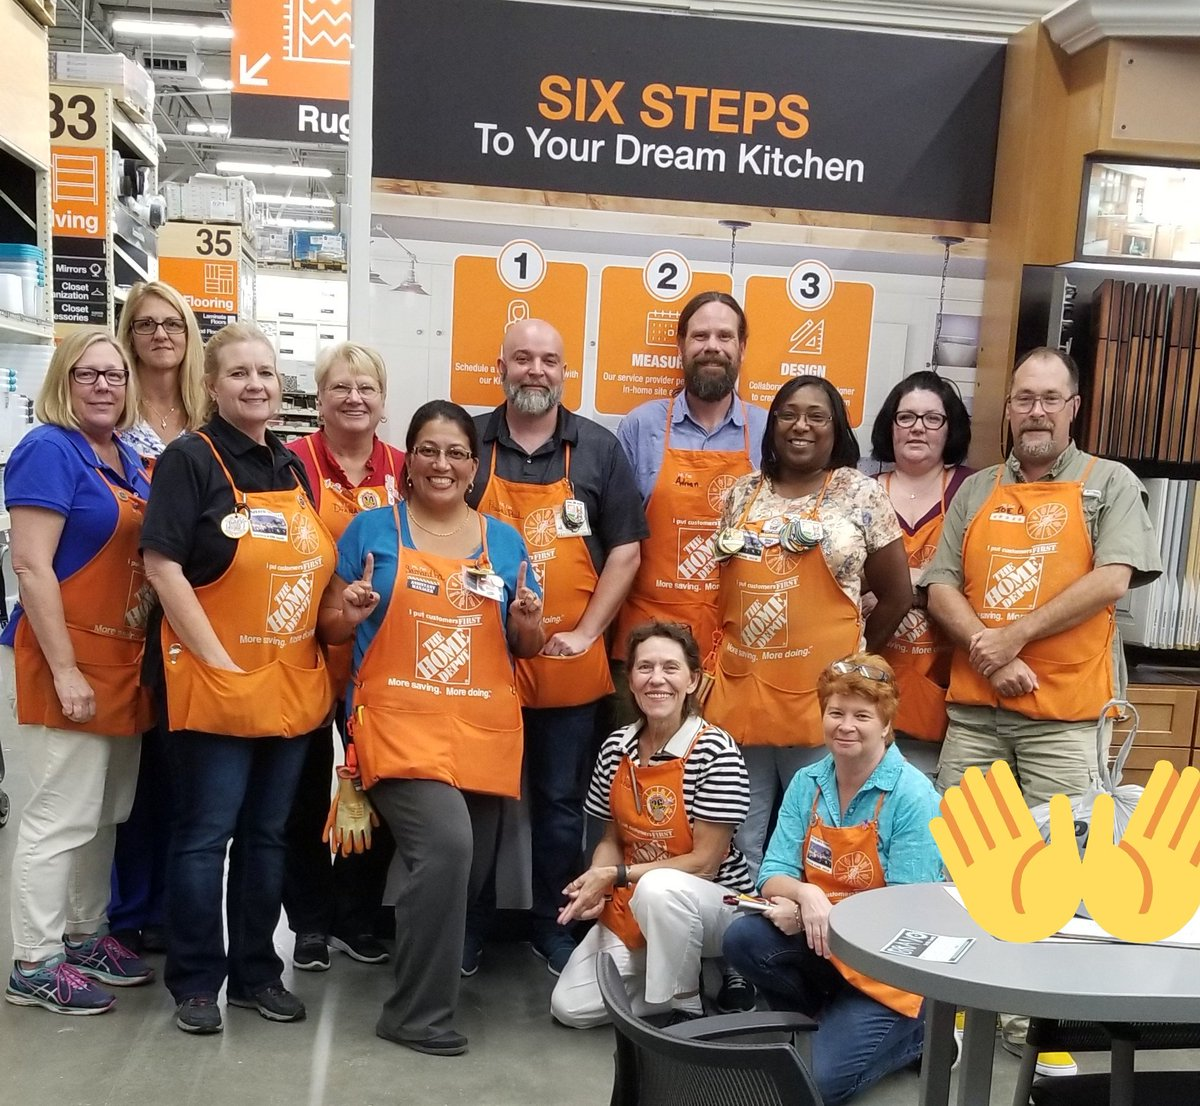 Winter Park 6349 Specialty Team!  Learning About Countertops, Fridges & more!!! #VOA365 #keepingmovingforward<br>http://pic.twitter.com/jW6LYN18gd